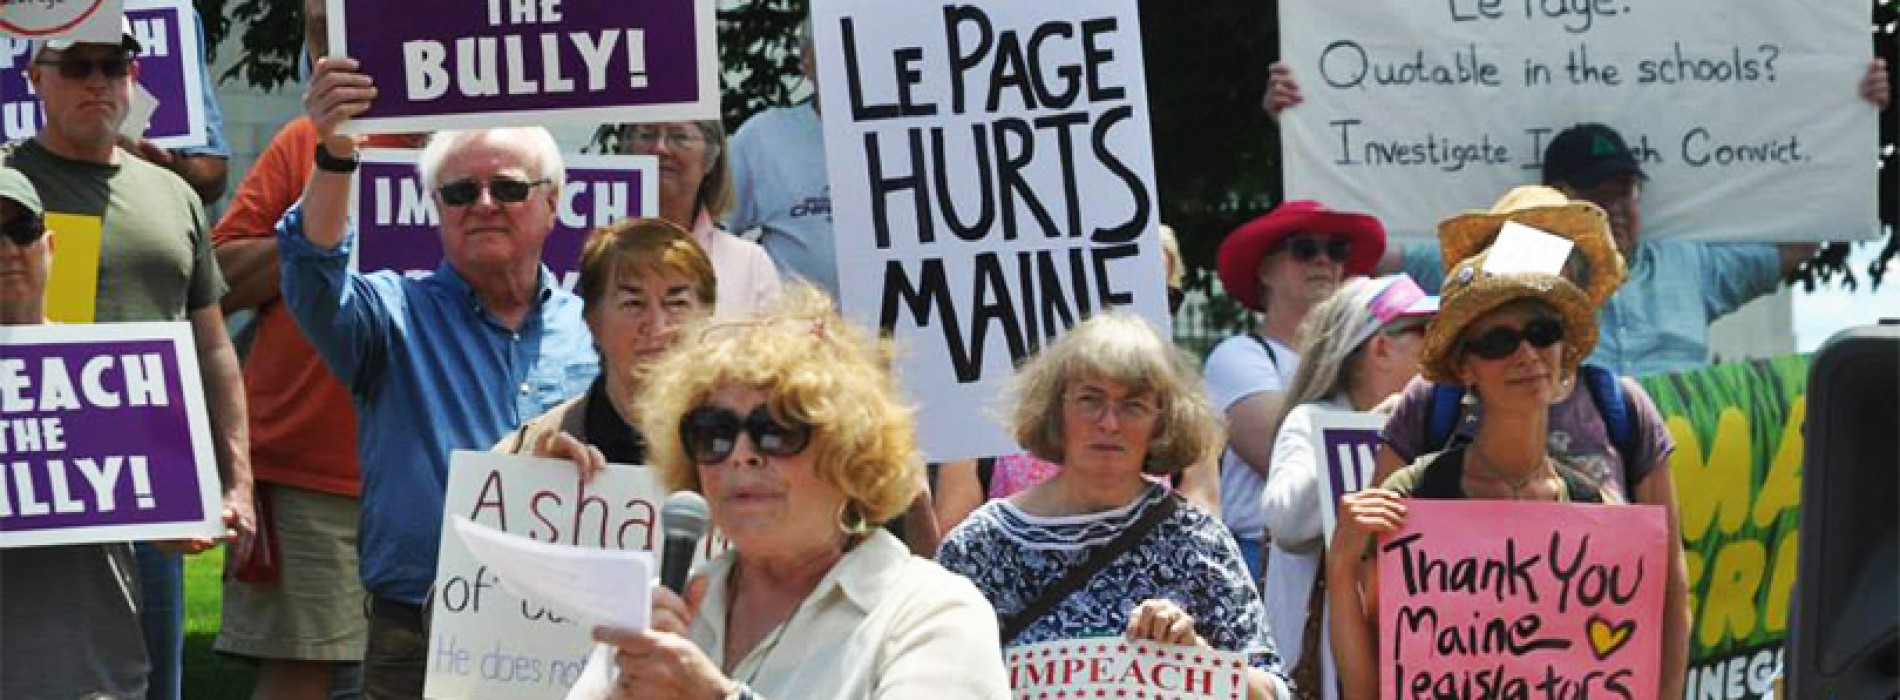 July 3, 2015 – Will Gov. LePage be impeached?